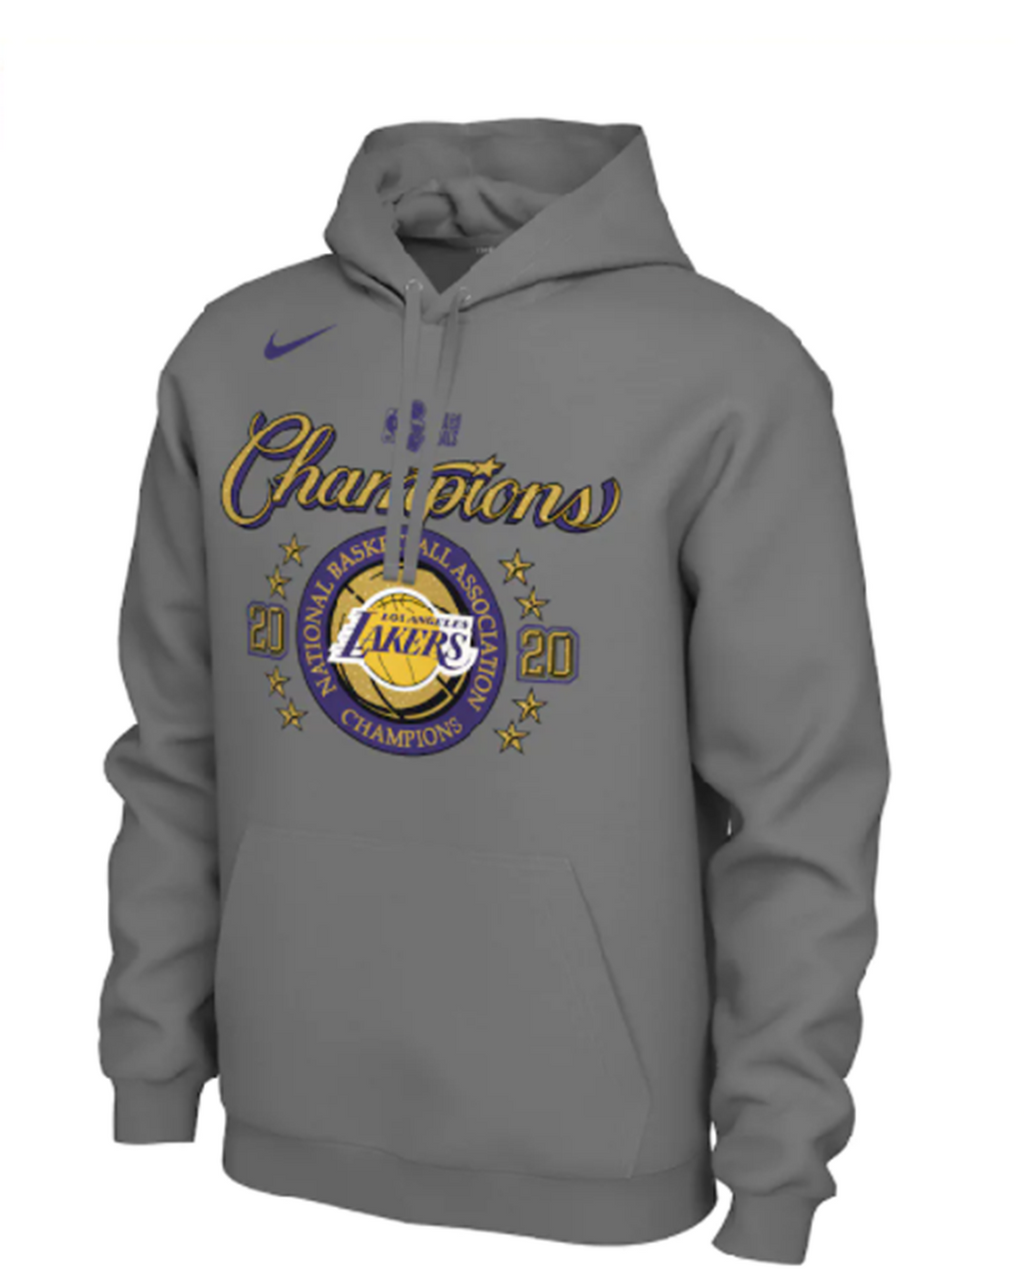 Los Angeles Lakers 2020 NBA Champions Locker Room Hoodie